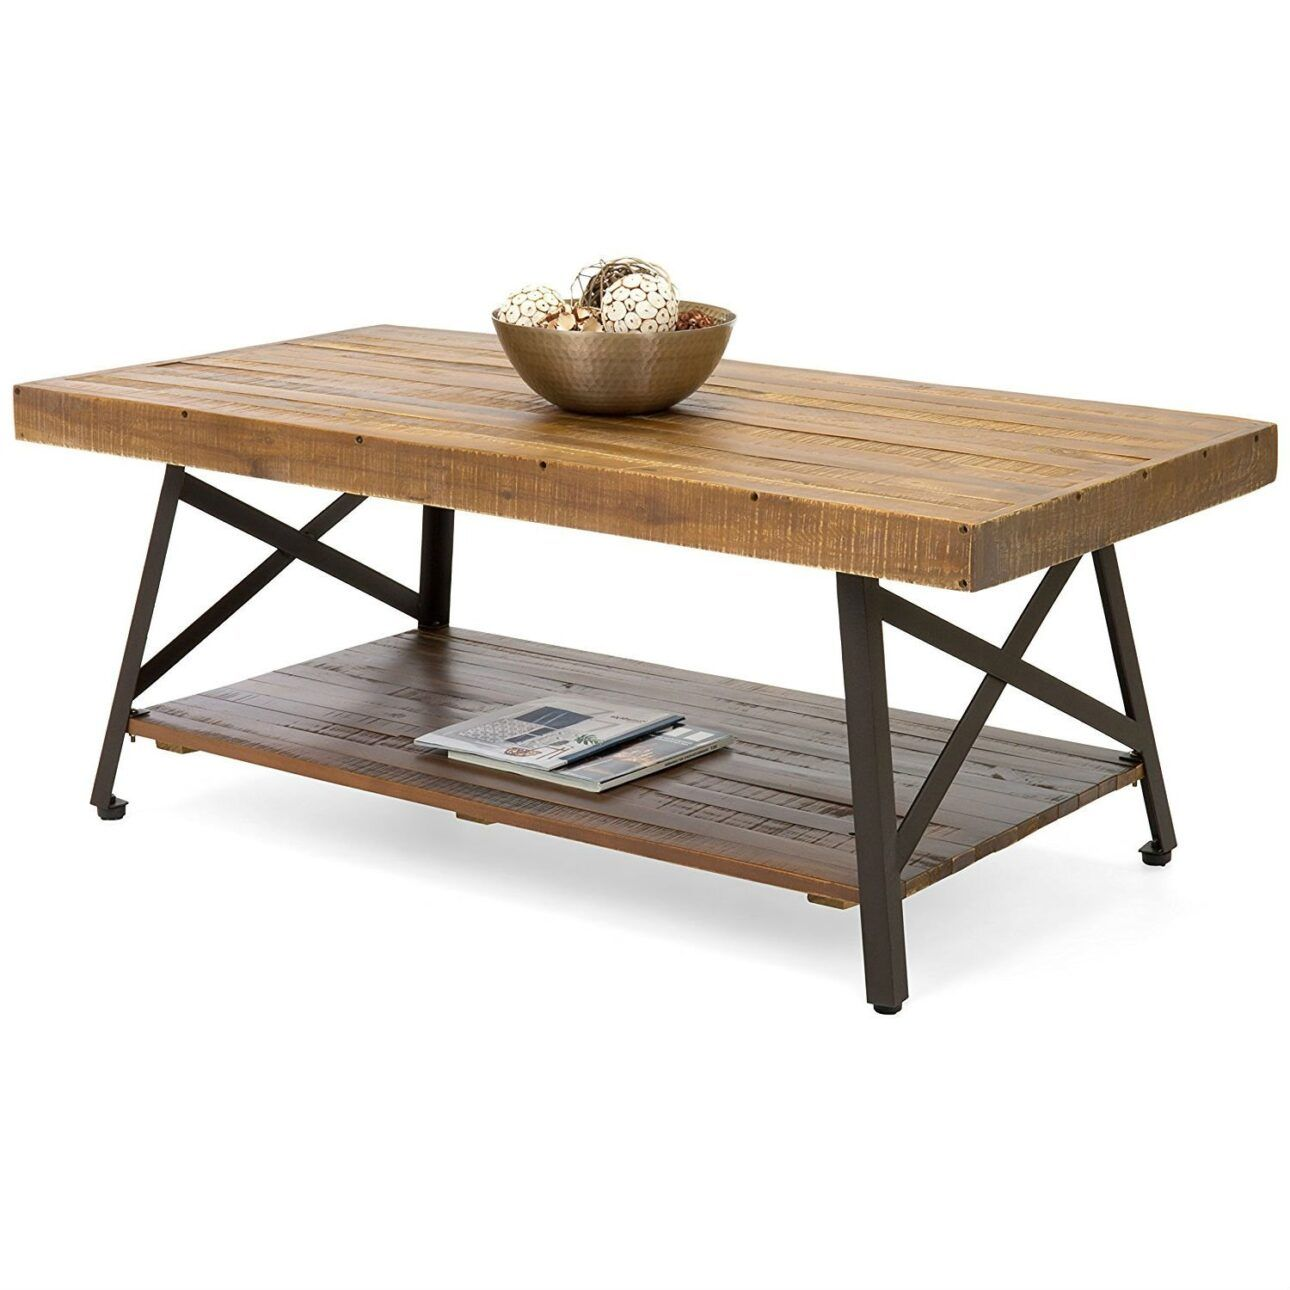 Pin By Jerl Store On Coffee Tables Coffee Table Wood Reclaimed Wood Coffee Table Coffee Table [ 1290 x 1290 Pixel ]